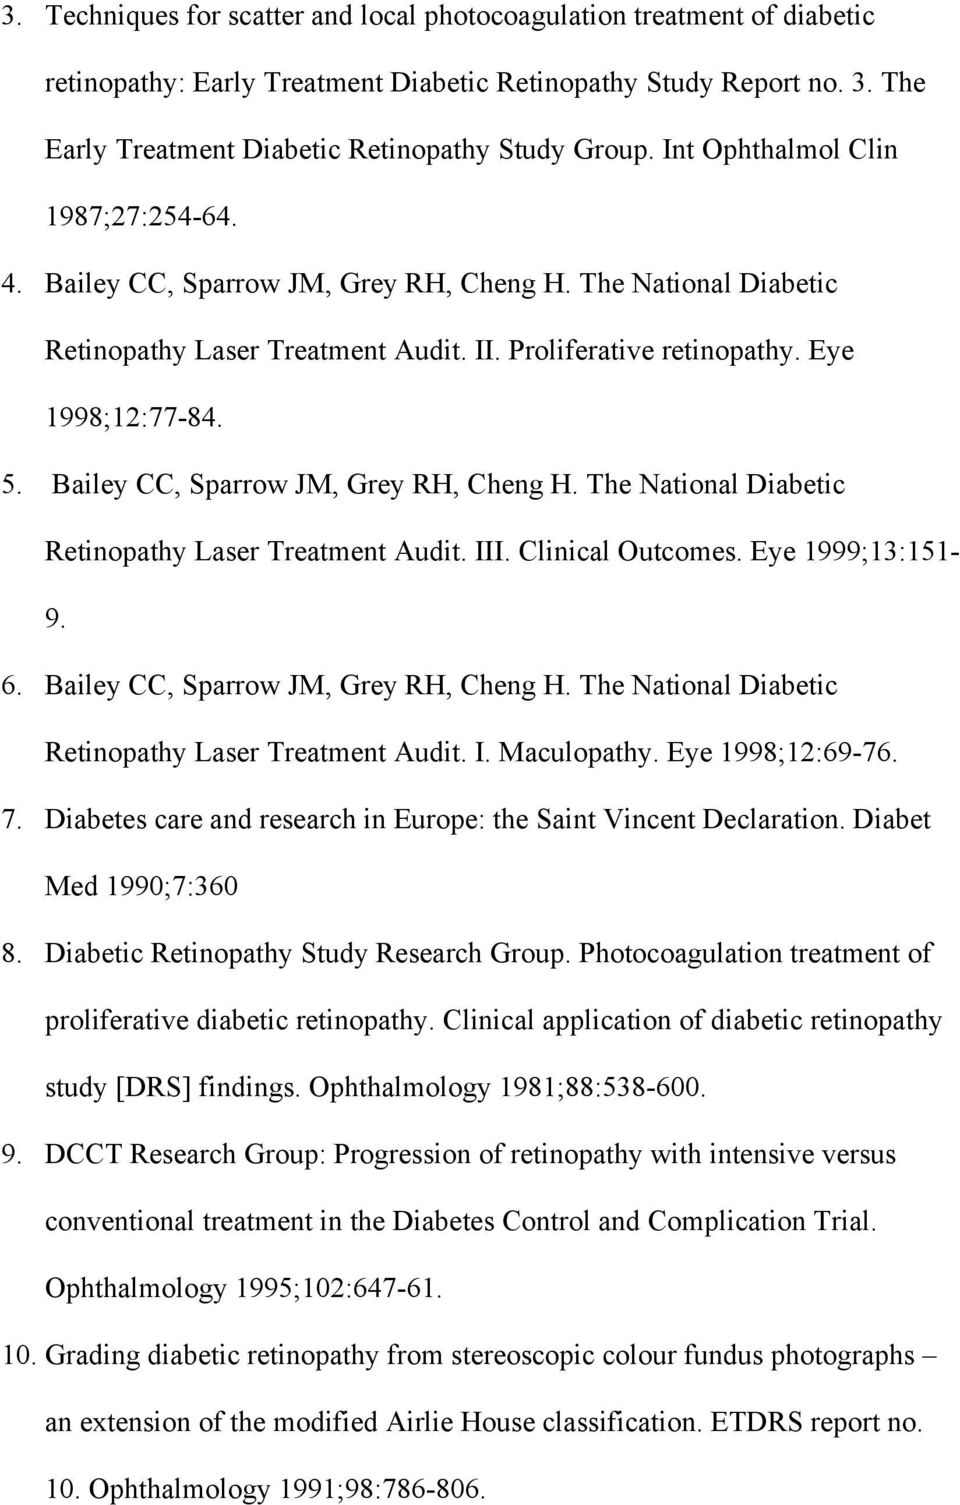 Bailey CC, Sparrow JM, Grey RH, Cheng H. The National Diabetic Retinopathy Laser Treatment Audit. III. Clinical Outcomes. Eye 1999;13:151-9. 6. Bailey CC, Sparrow JM, Grey RH, Cheng H.